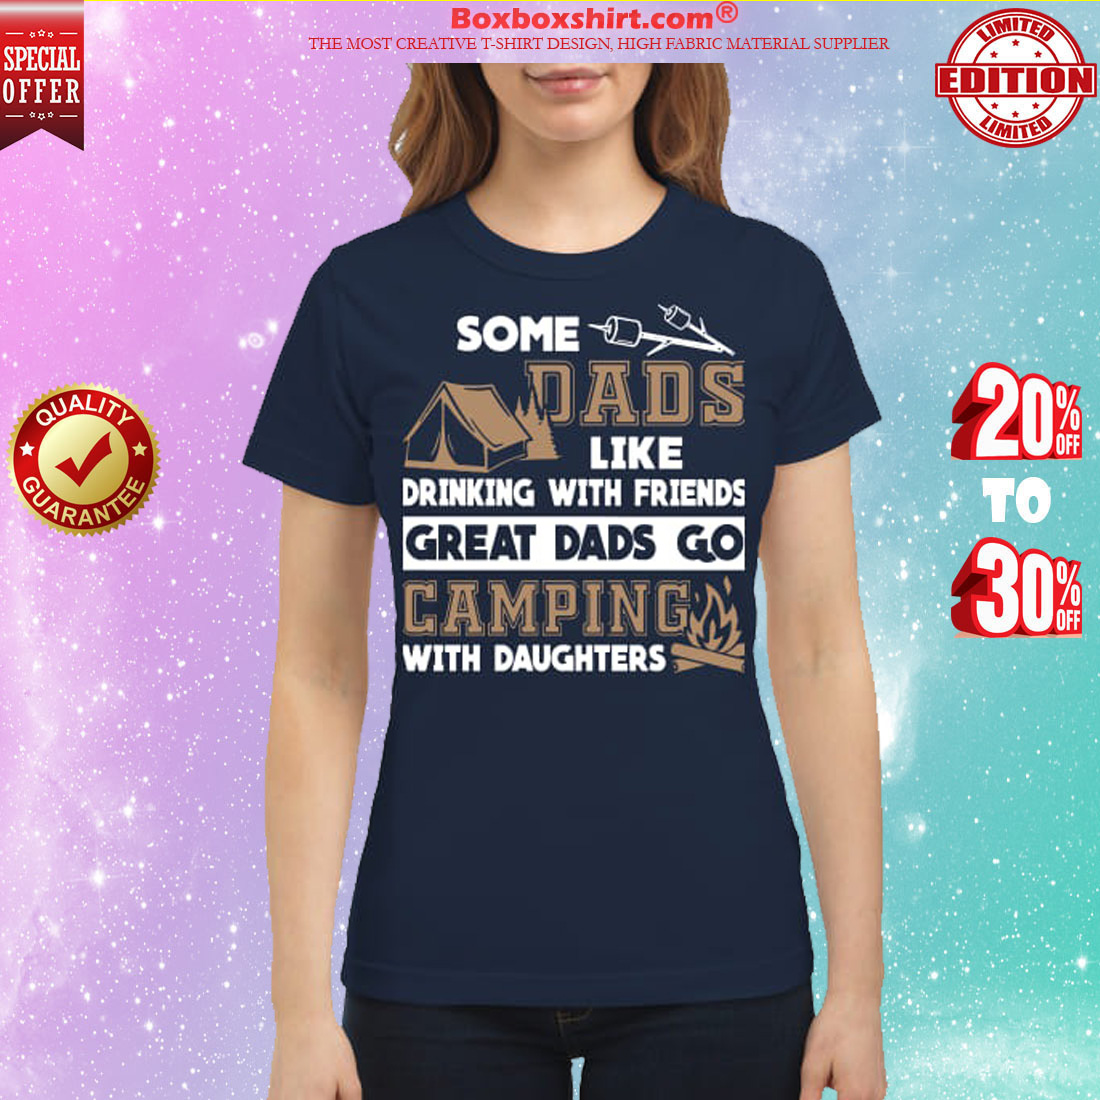 Some dad like drinking with friends great dads go camping with daughters classic shirt